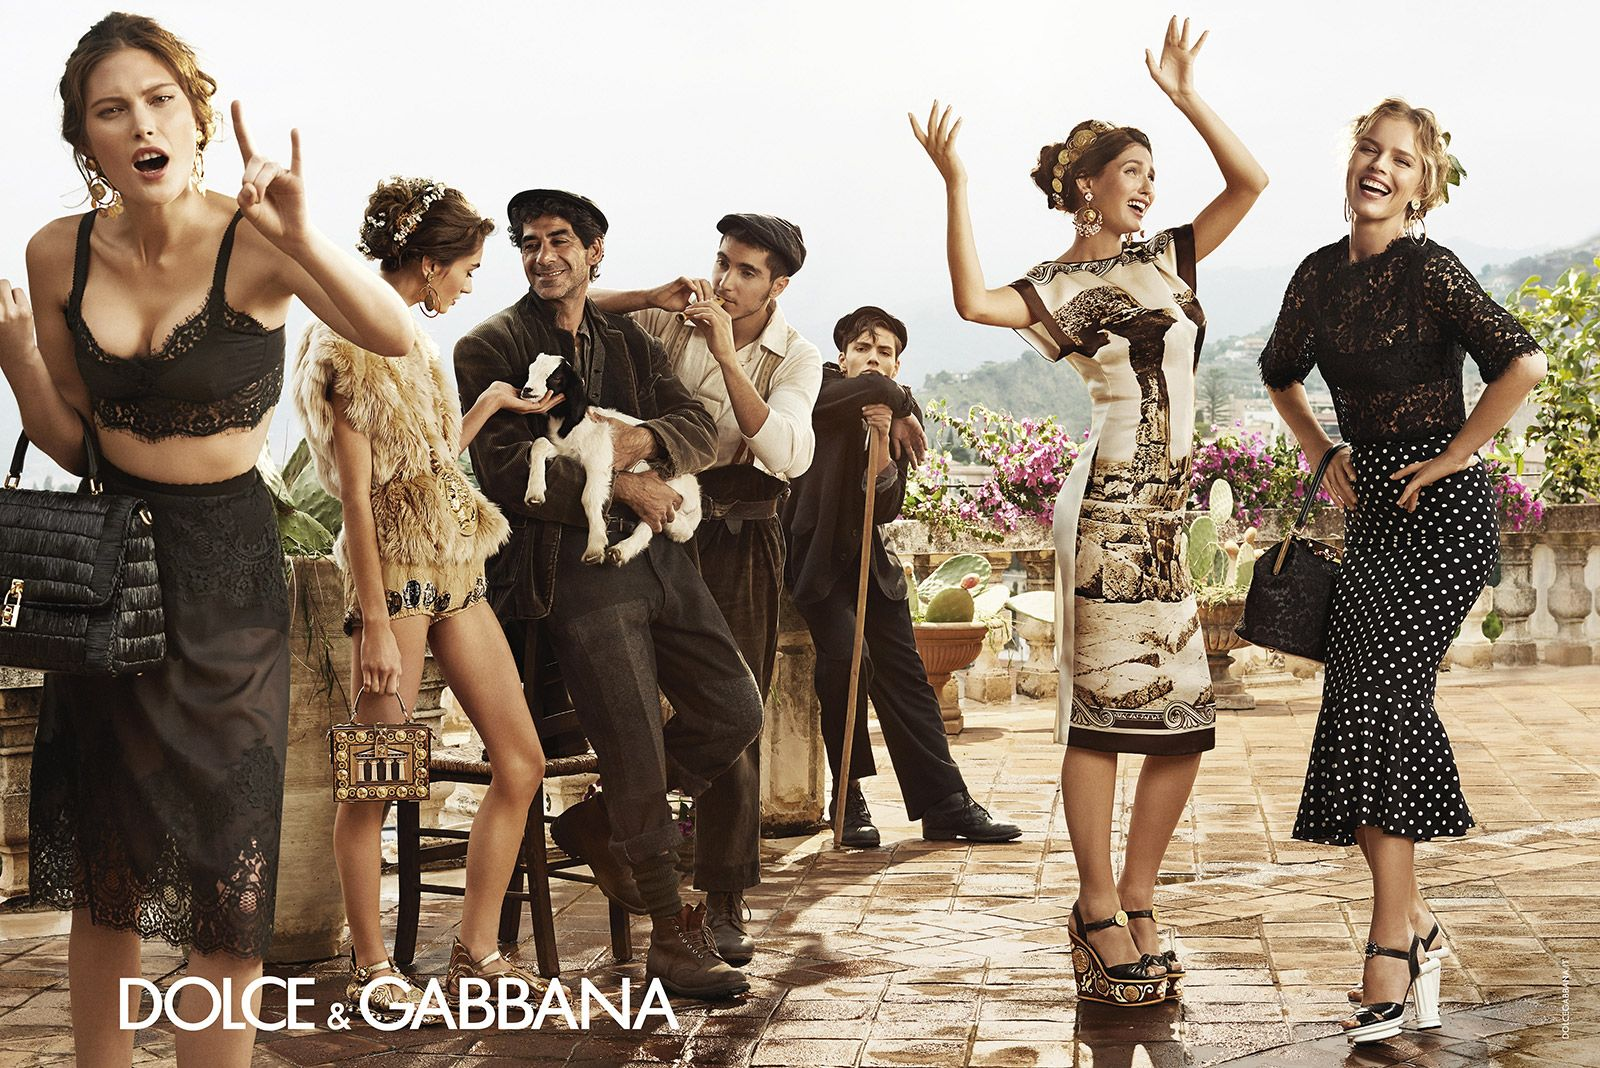 dolce and gabbana ss 2014 womens advertising campaign 06 zoom